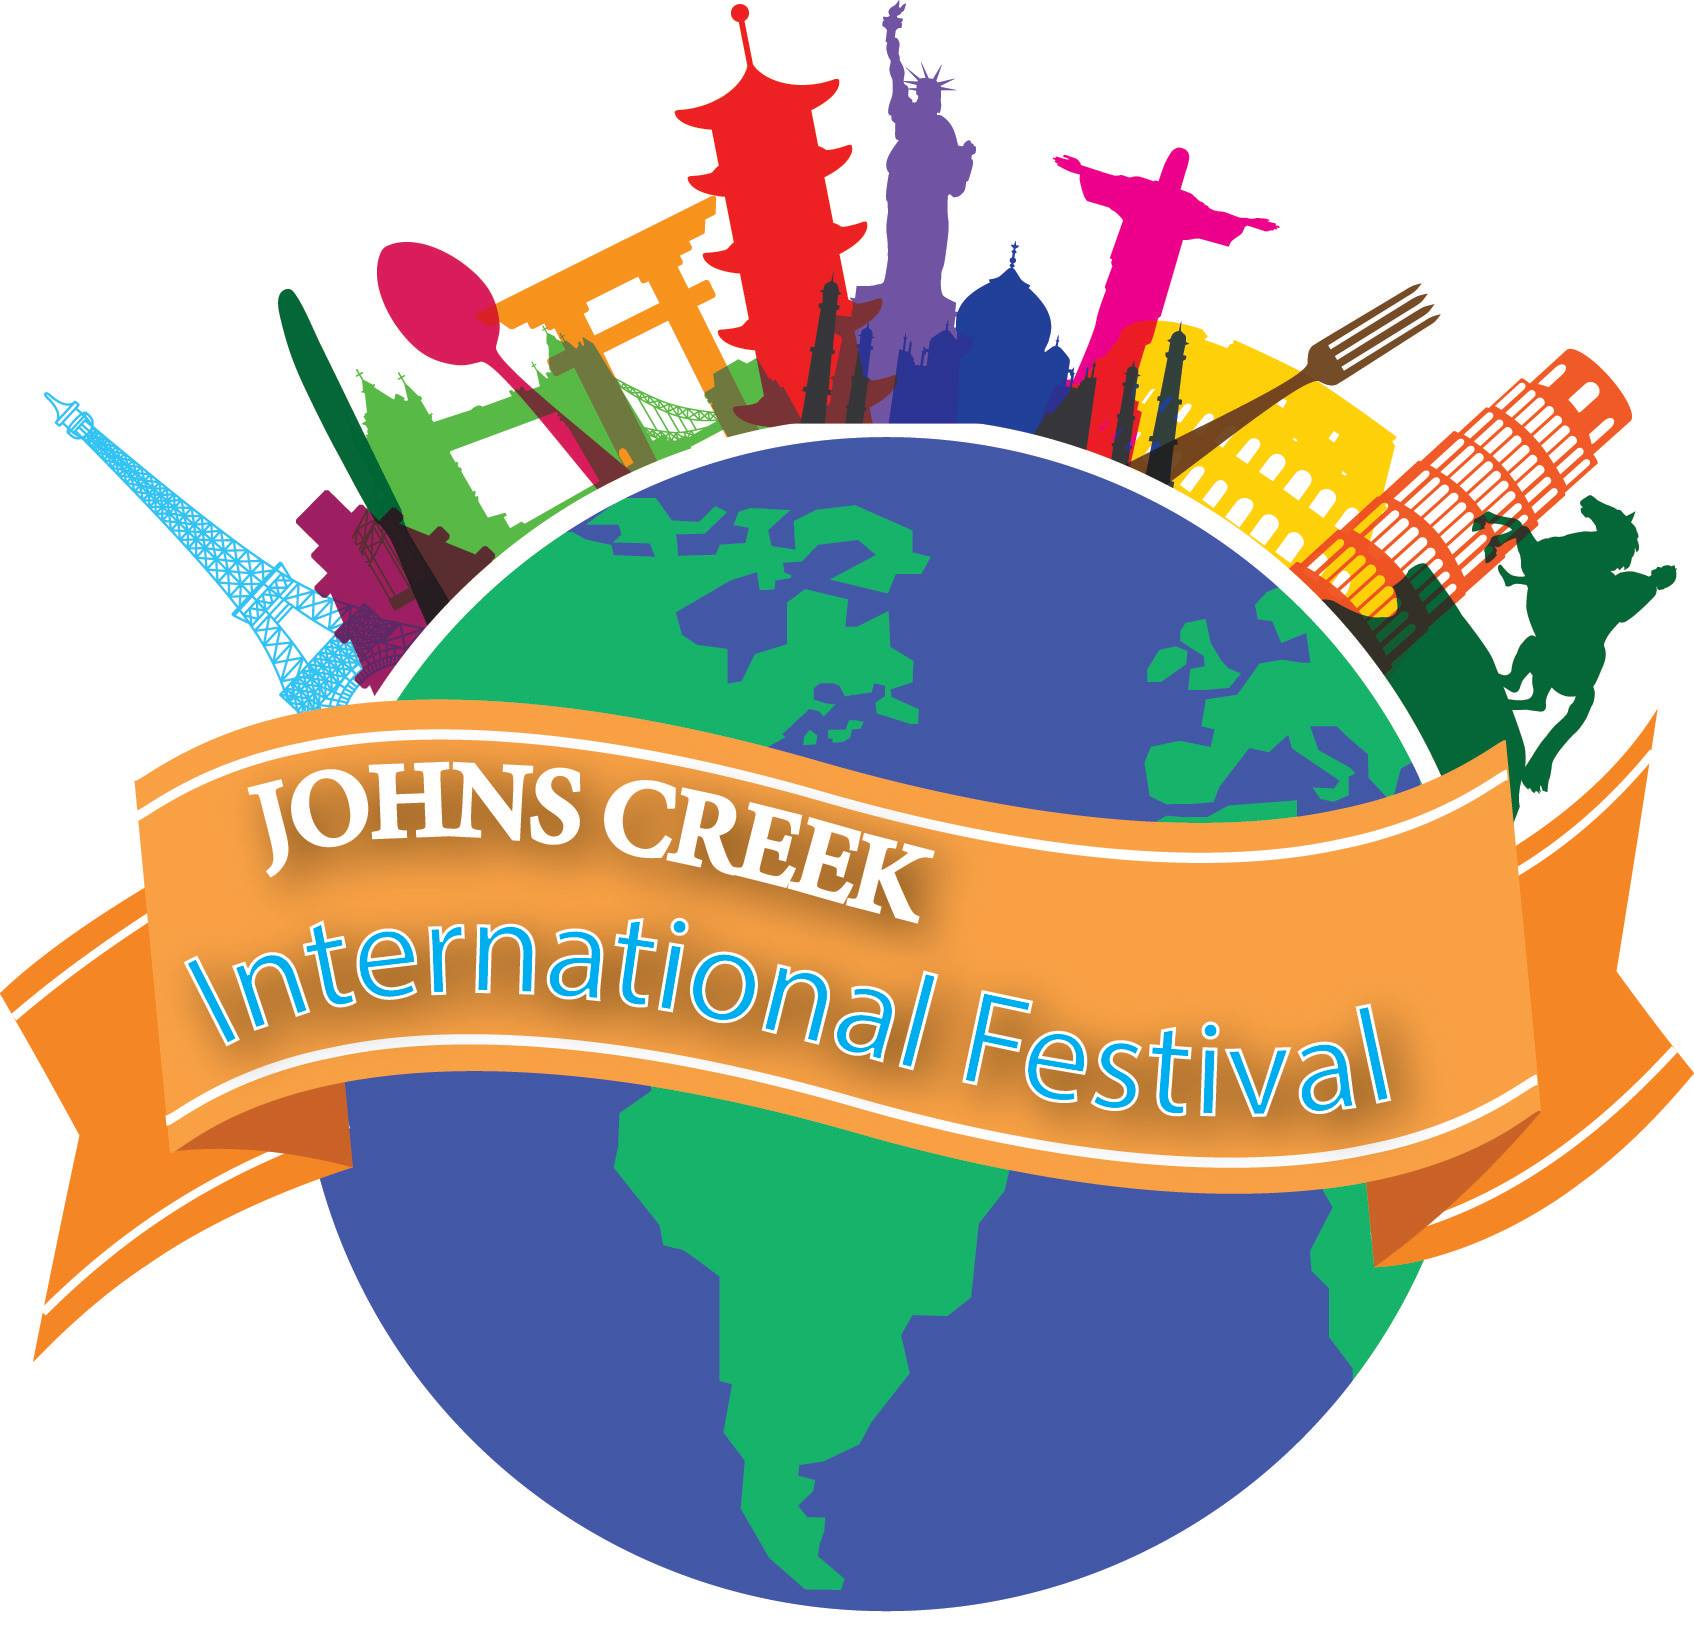 Johns Creek International Festival coming April 27